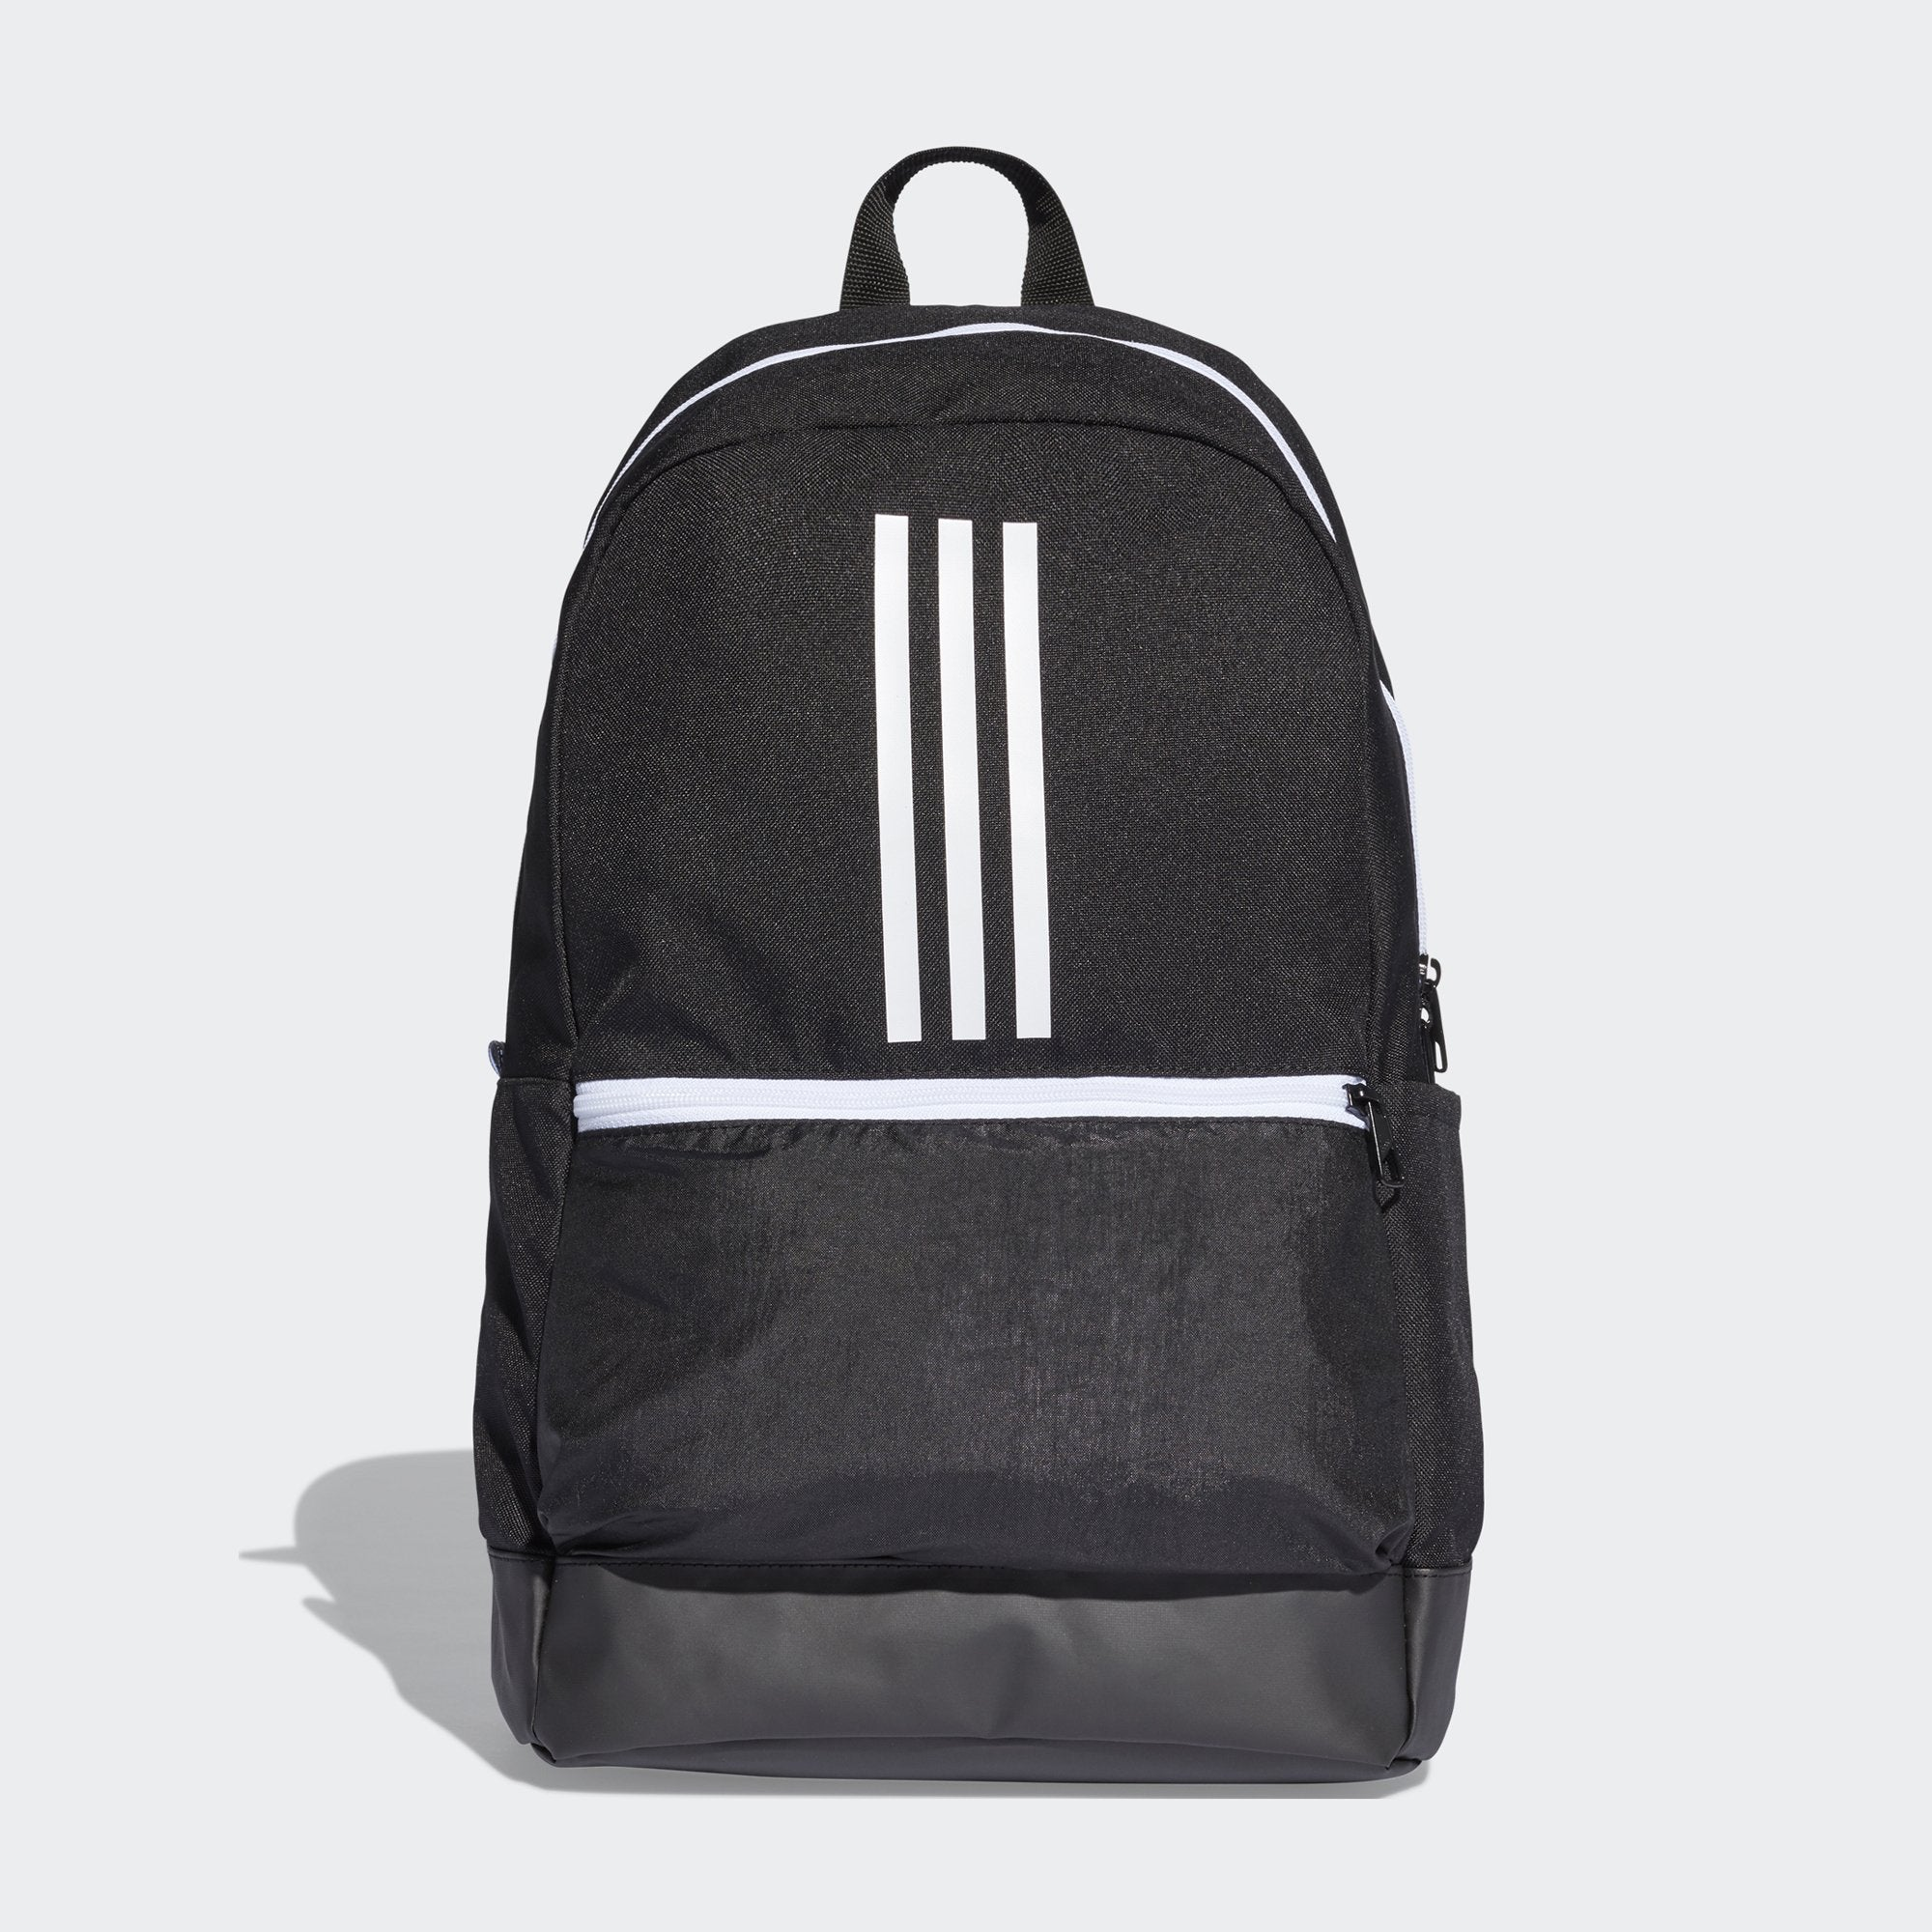 460babc78b532 Buy adidas Classic 3-Stripes Backpack Online in Singapore | Royal Sporting  House